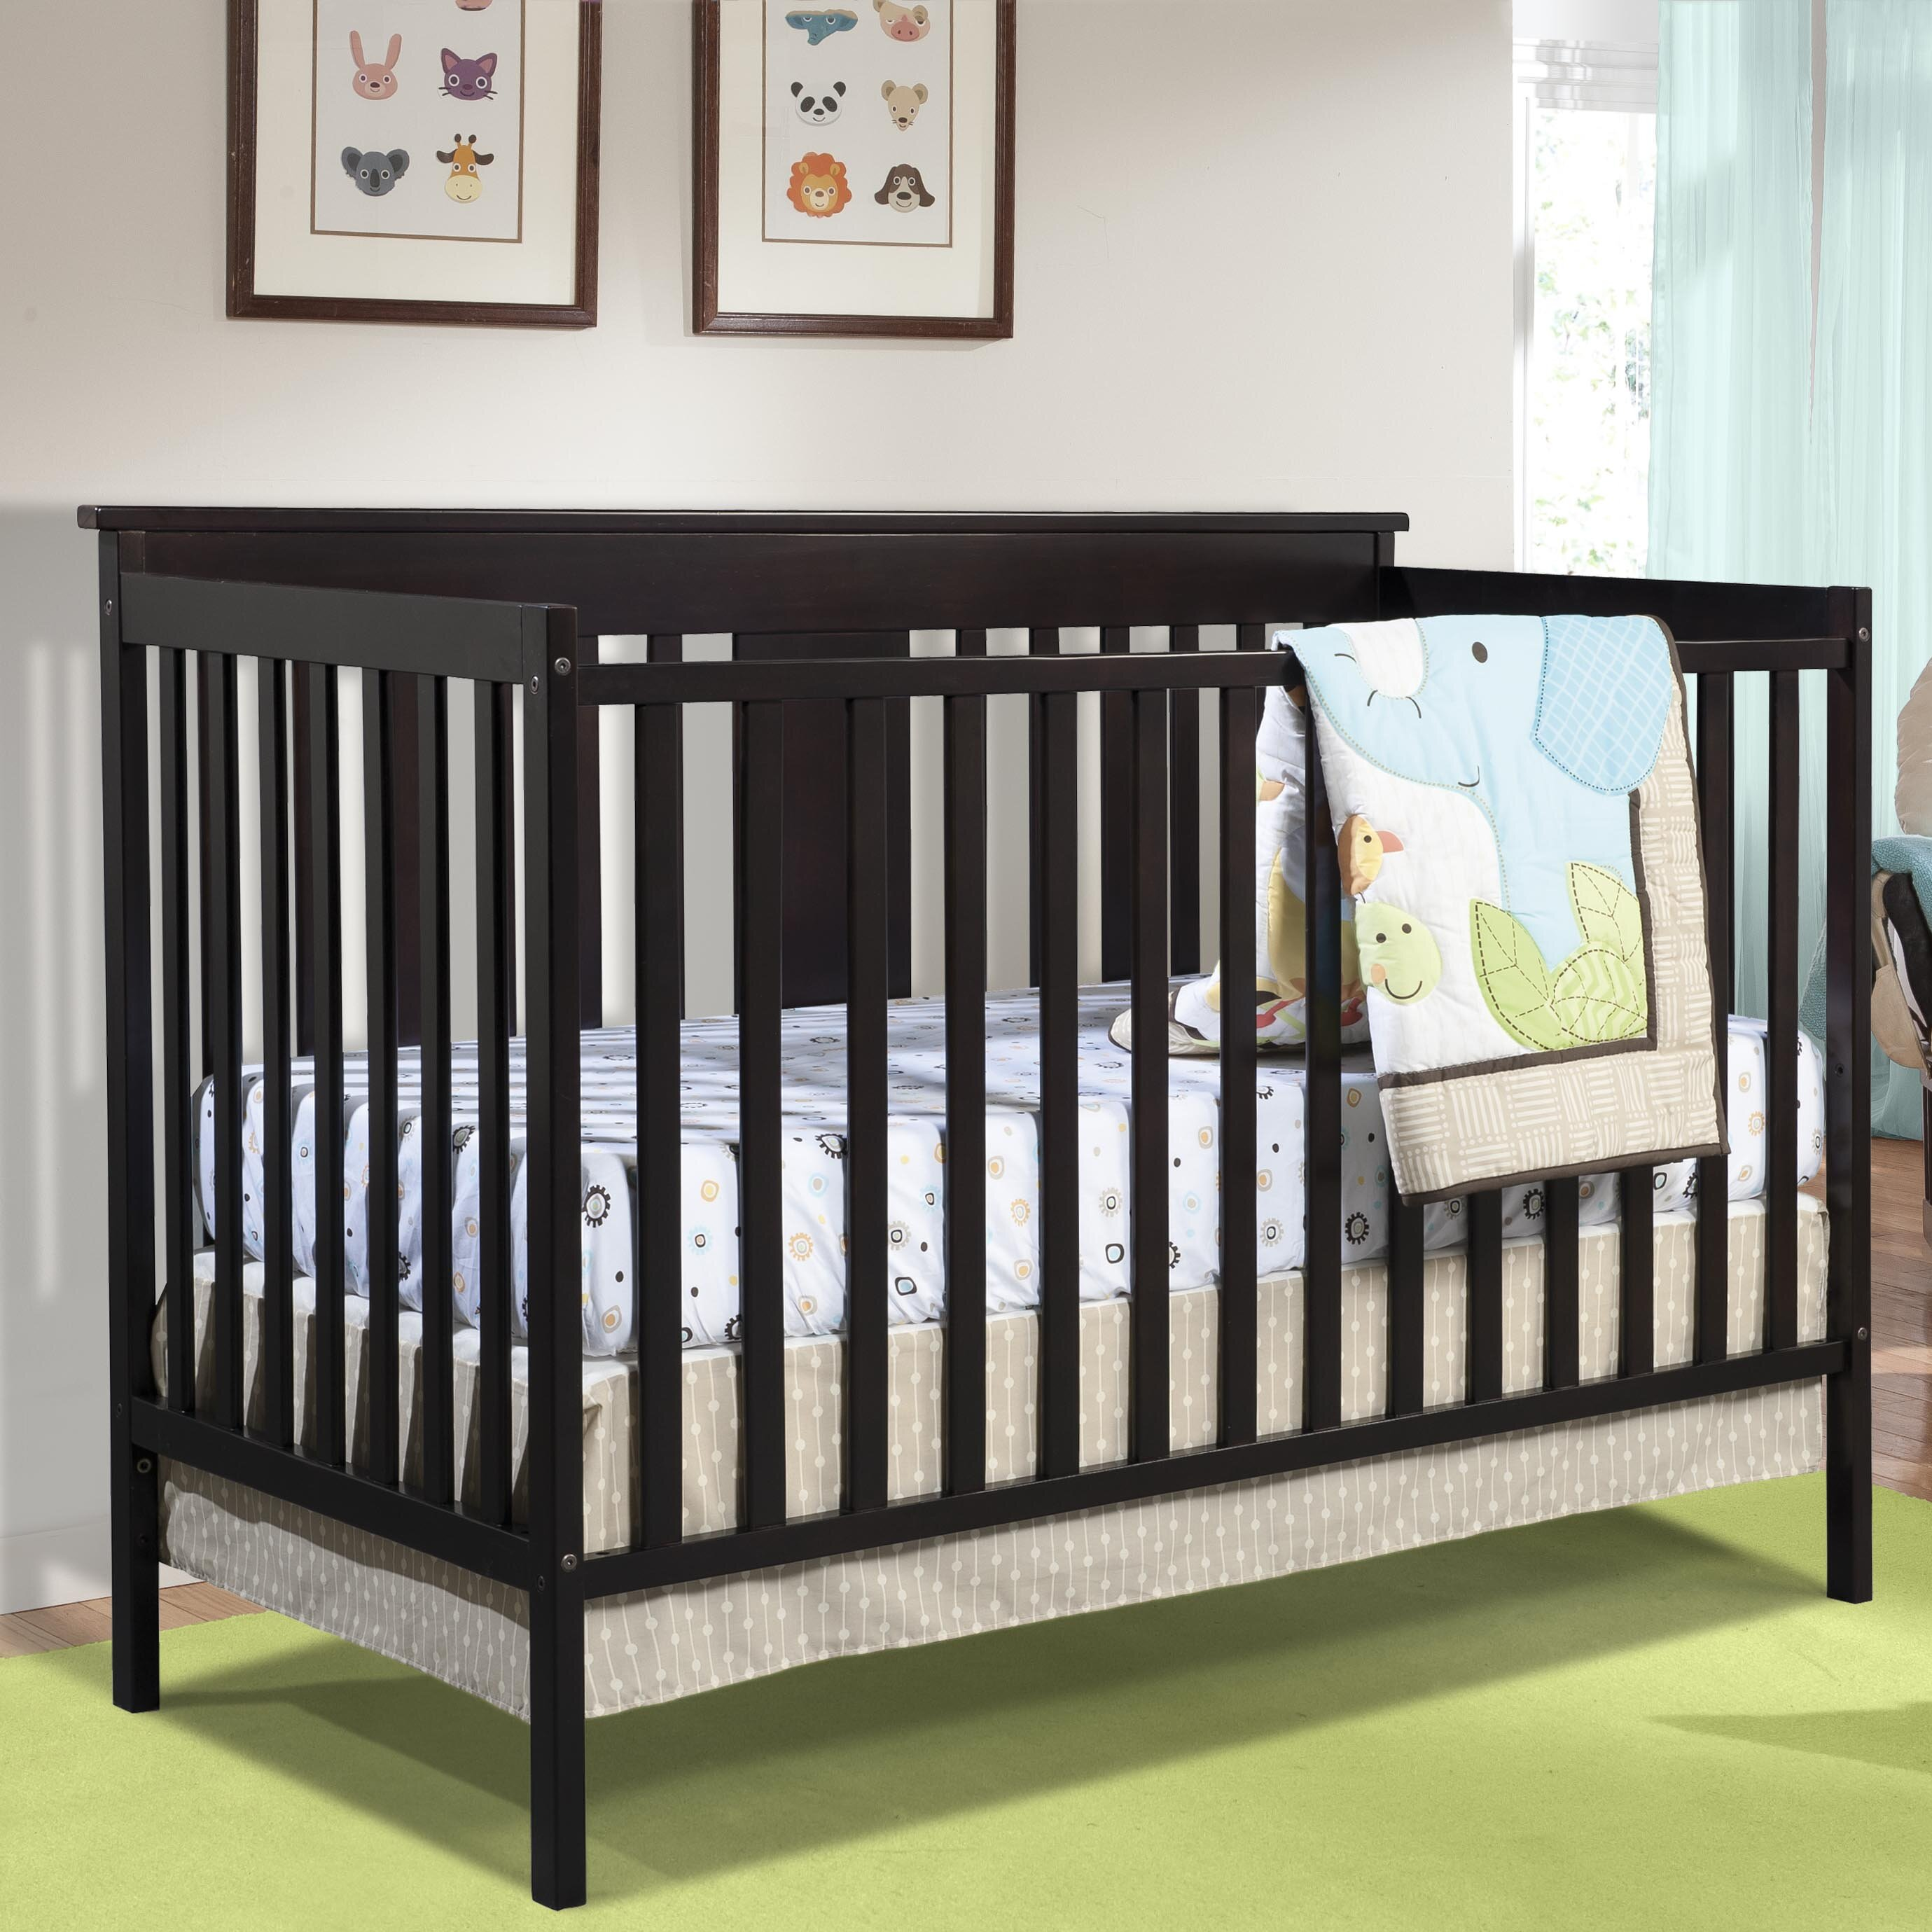 Storkcraft Mission Ridge Stages 3 In 1 Convertible Crib